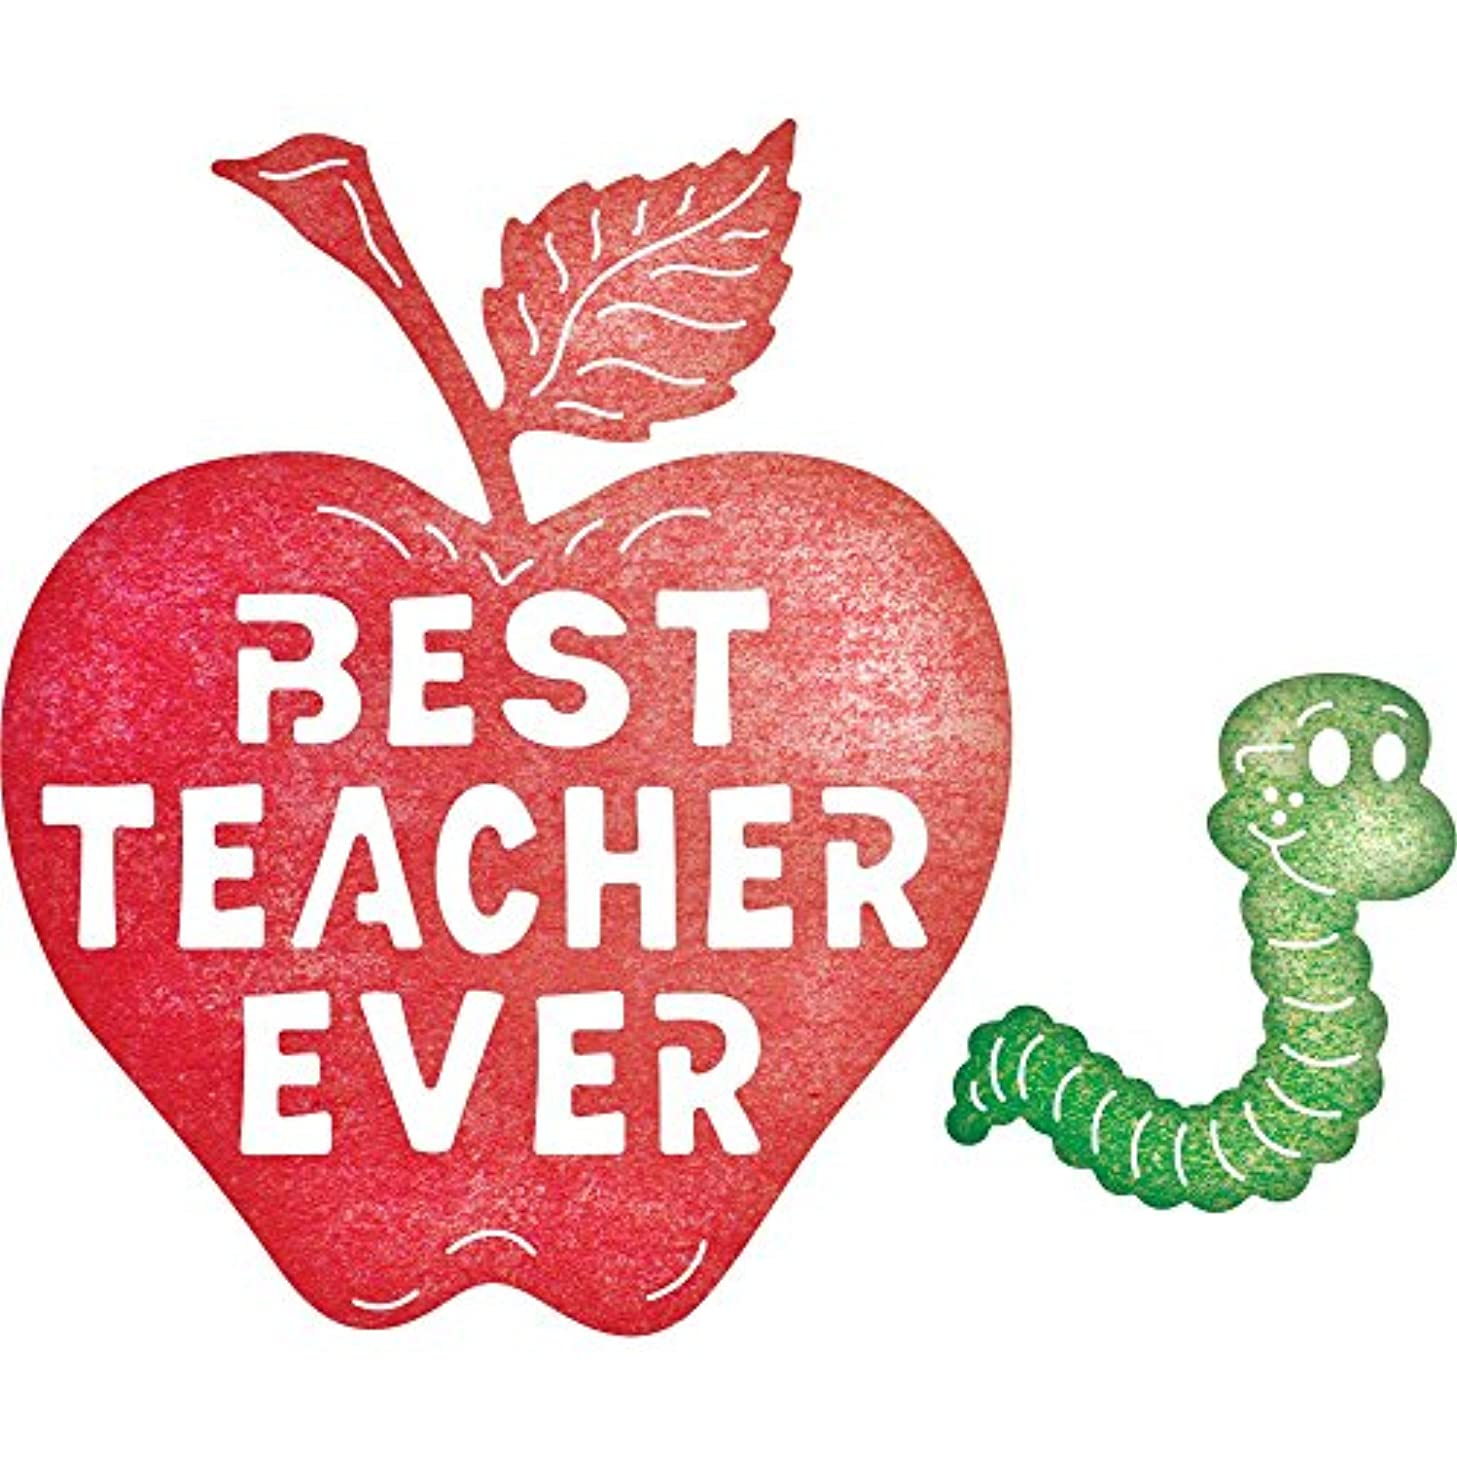 Cheery Lynn Designs B652 Best Teacher Ever Die Cuts